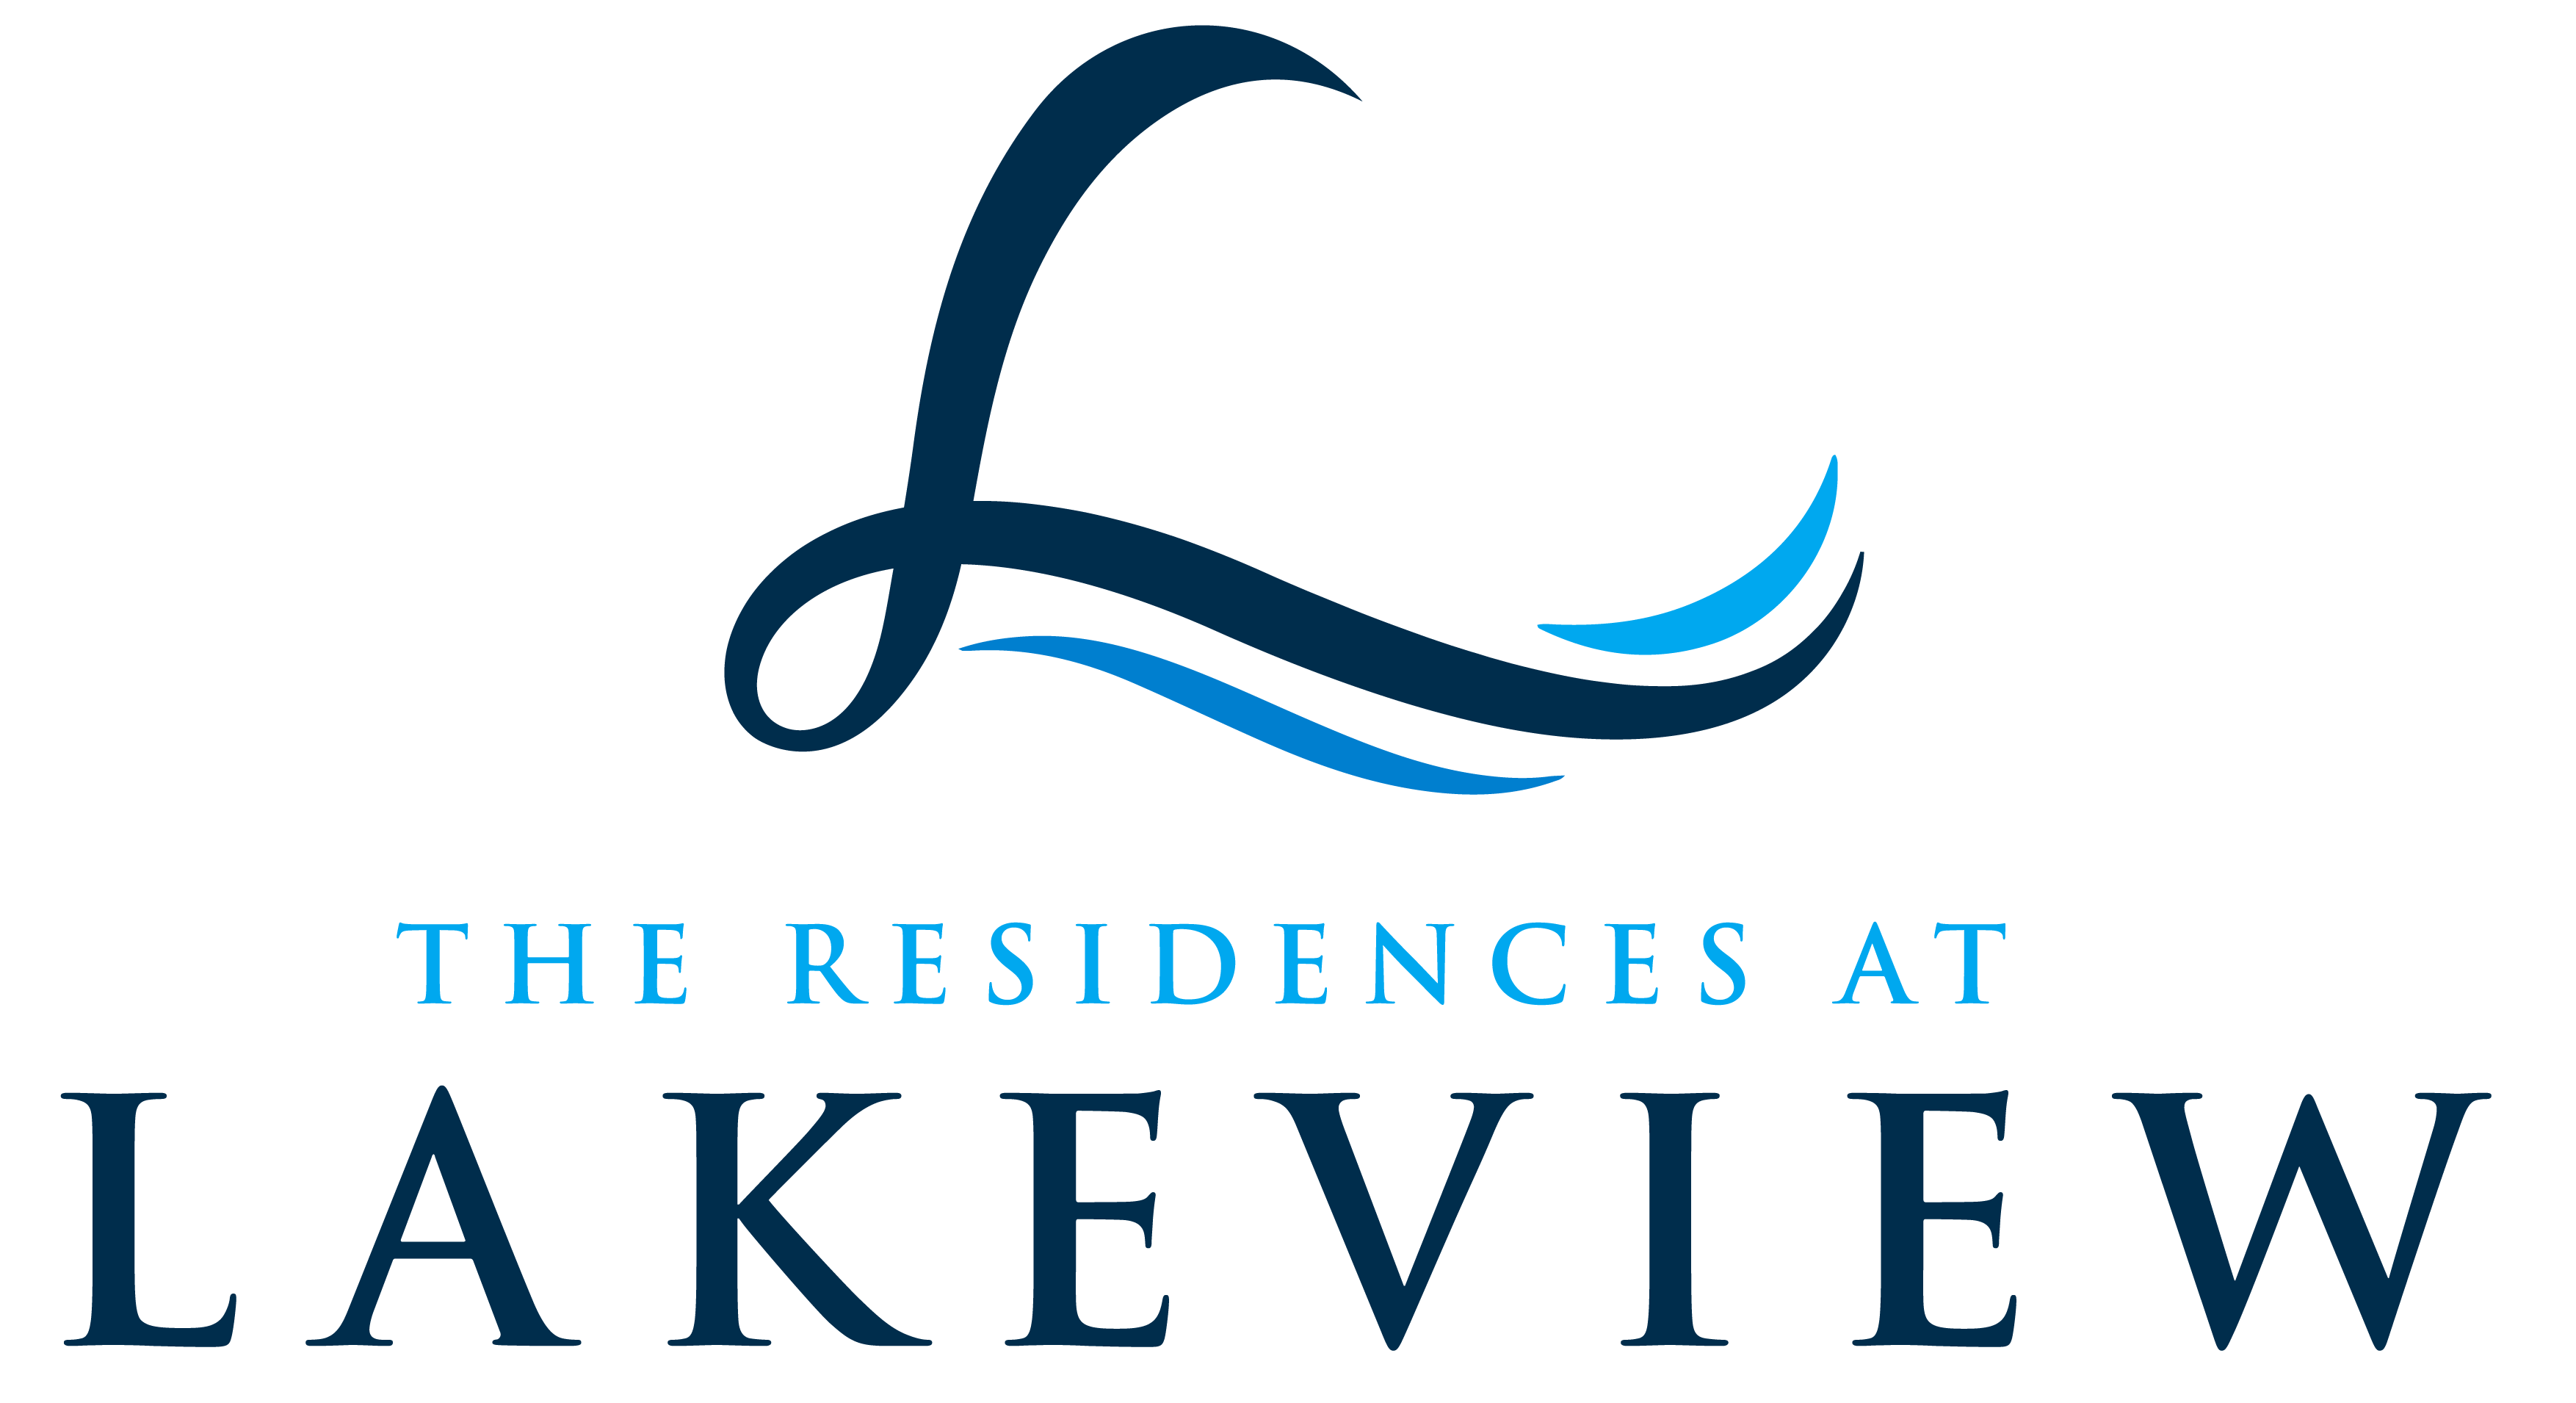 The Residences at Lakeview